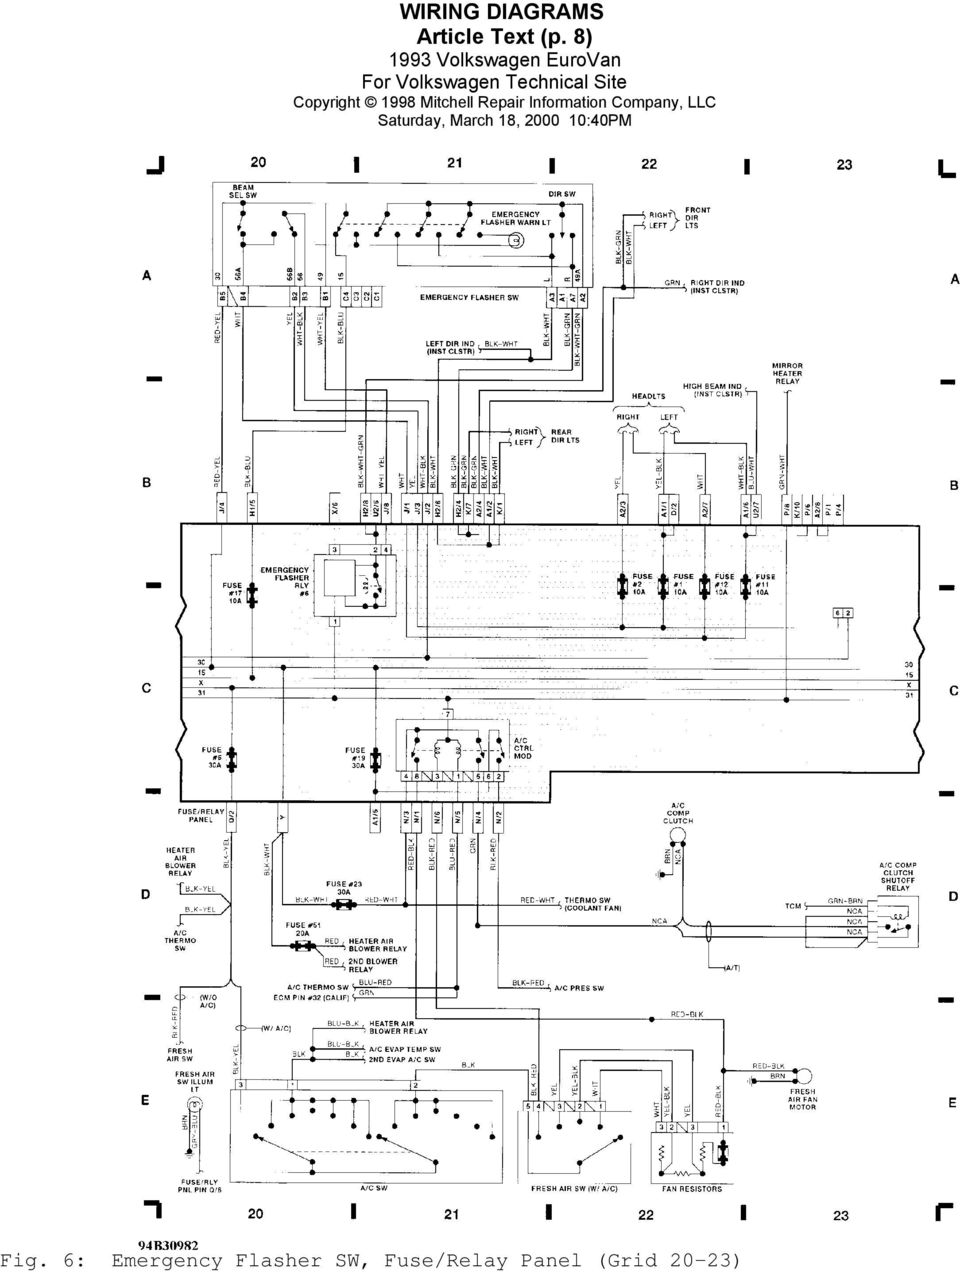 hight resolution of 99 eurovan wiring diagram wiring diagram load 99 eurovan wiring diagram